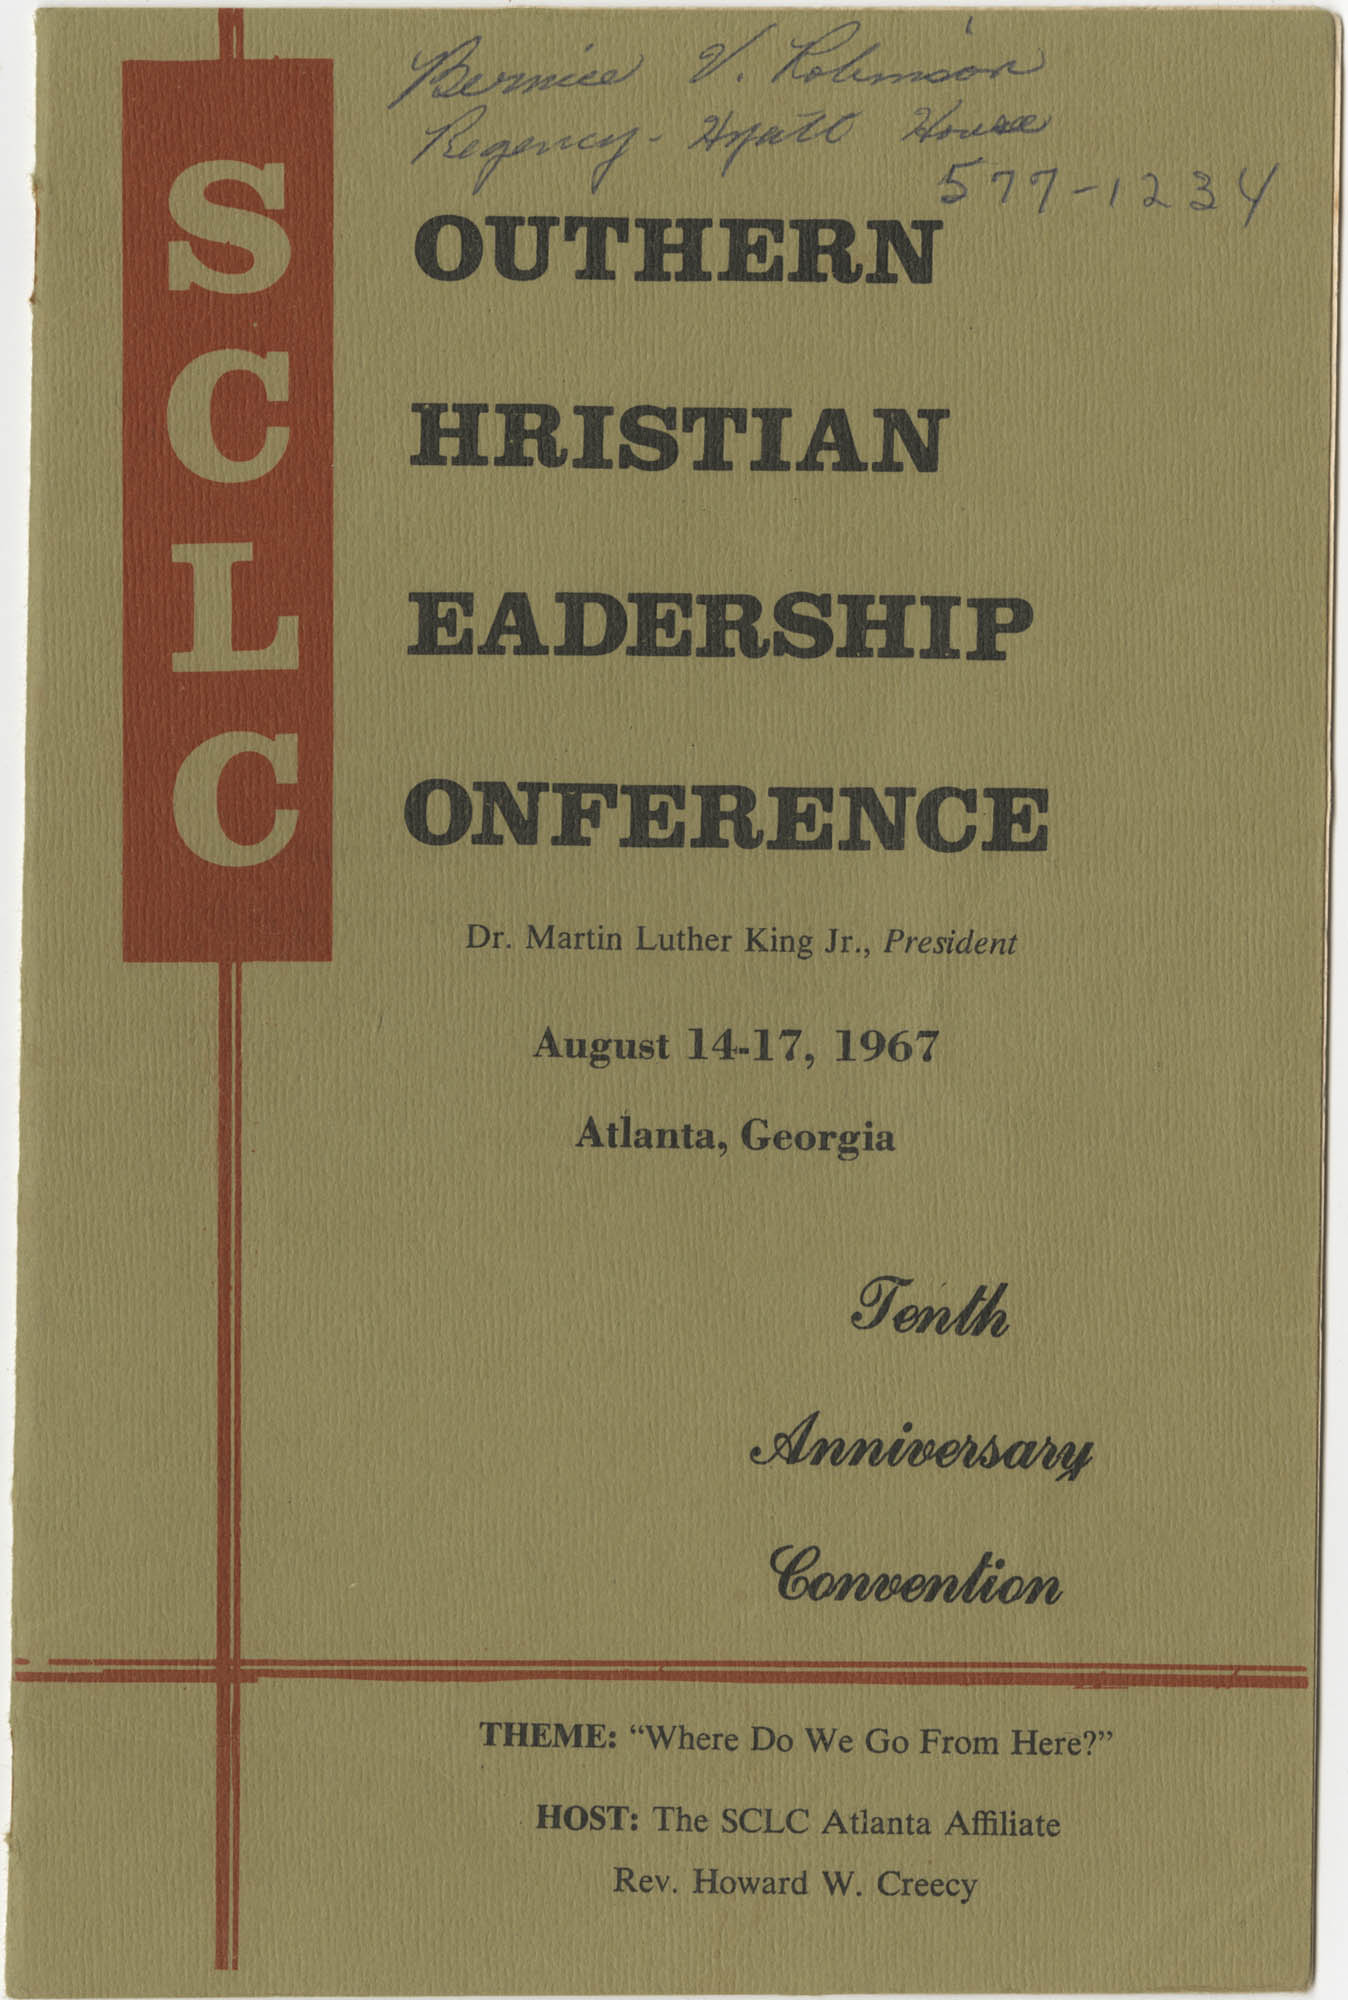 Southern Christian Leadership Conference, Tenth Anniversary Convention Program, Front Cover Exterior